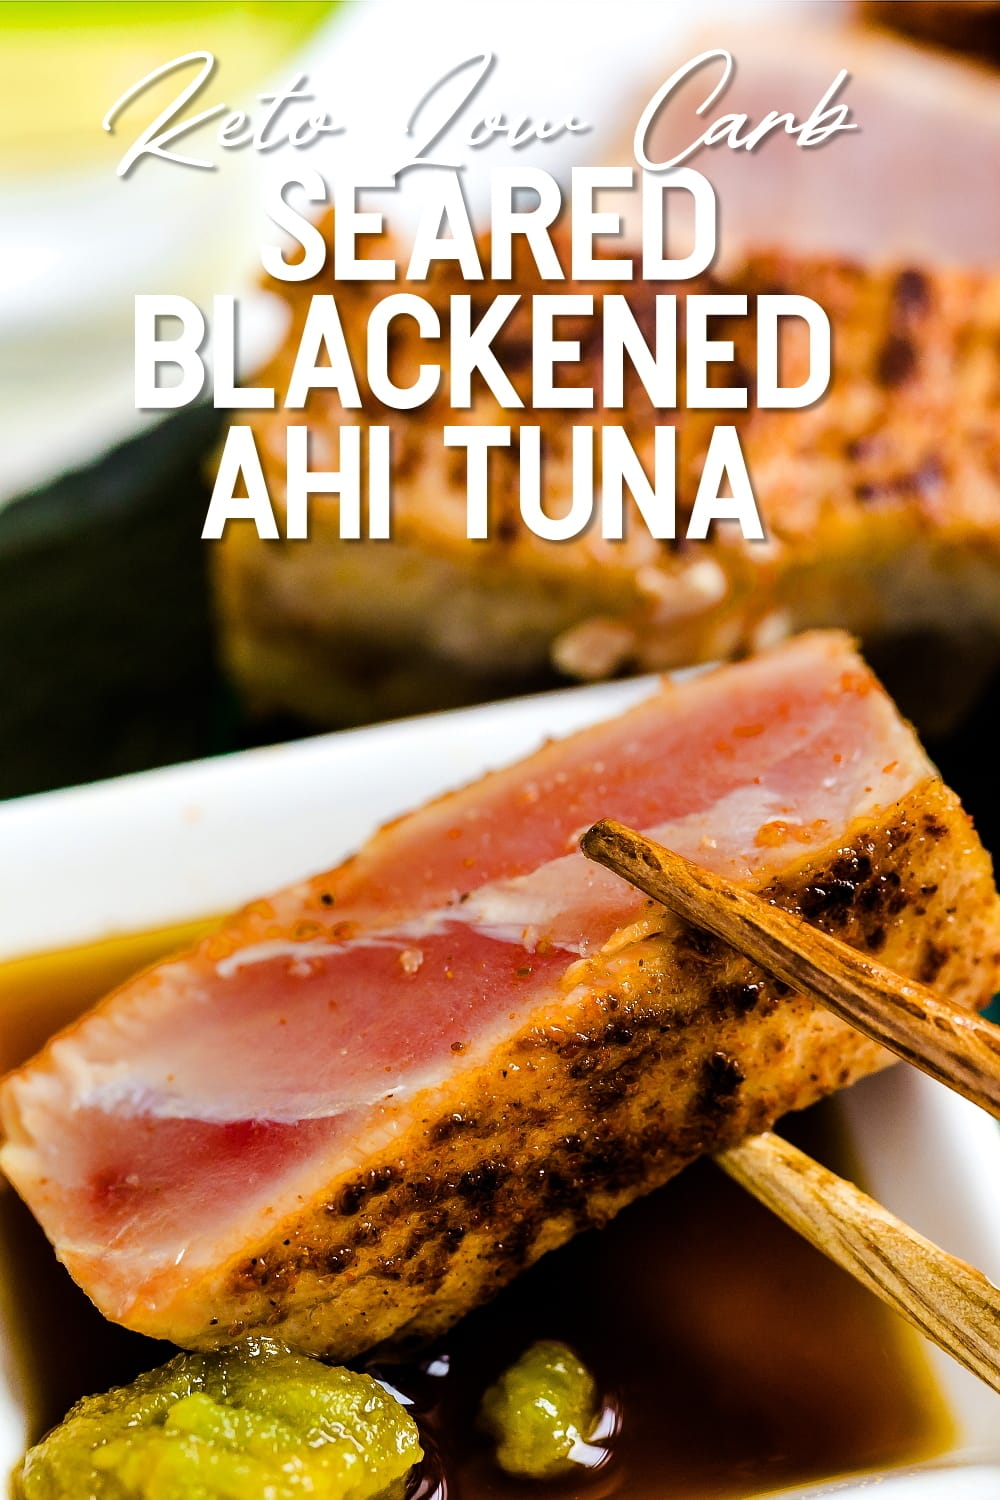 Seared Blackened Ahi Tuna Steak being dipping into a sweer wasabi umami soy sauce